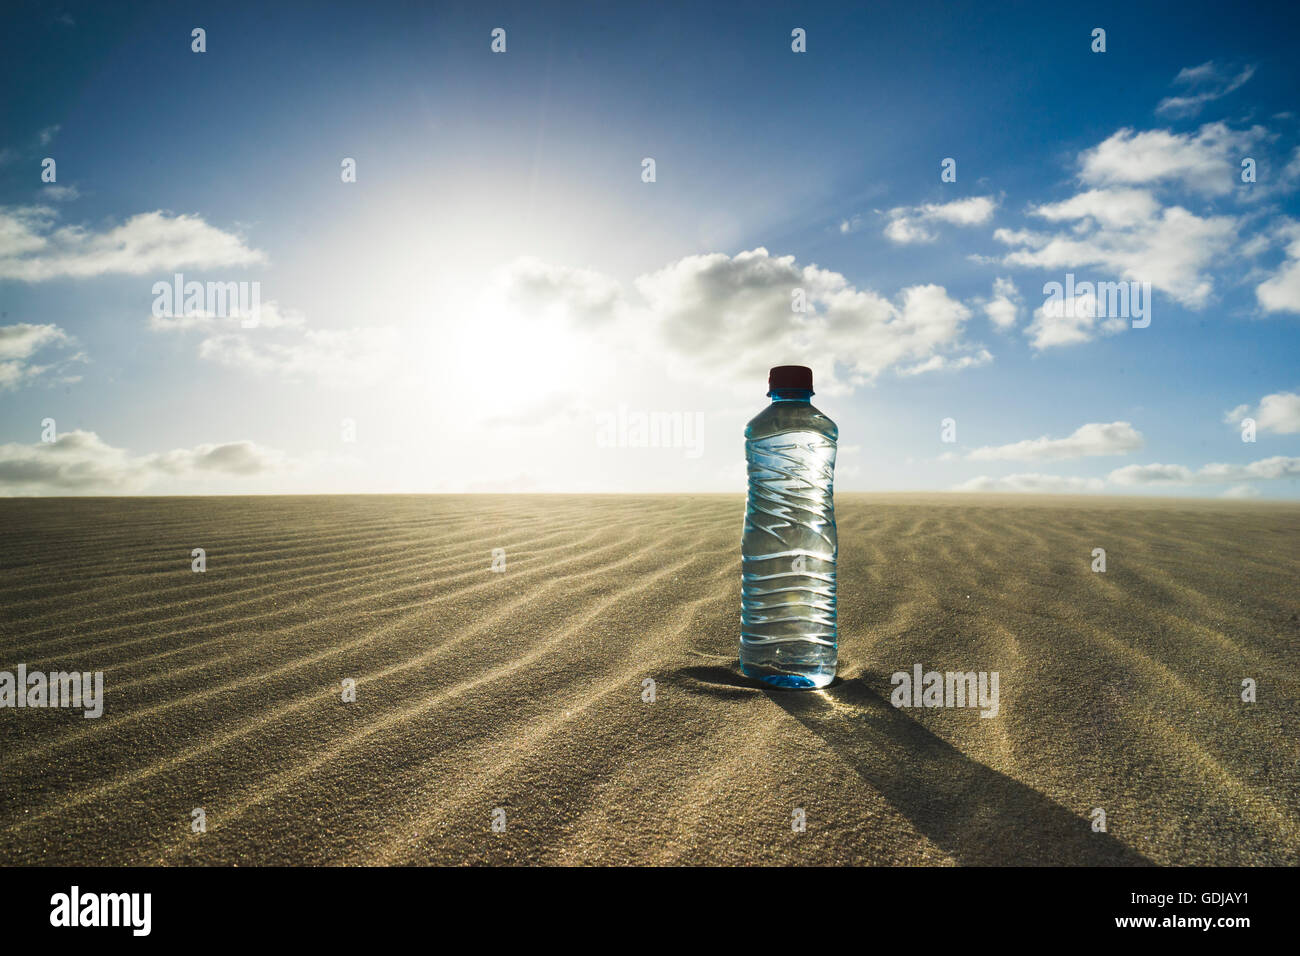 water bottle in desert landscape with dunes and sun - Stock Image